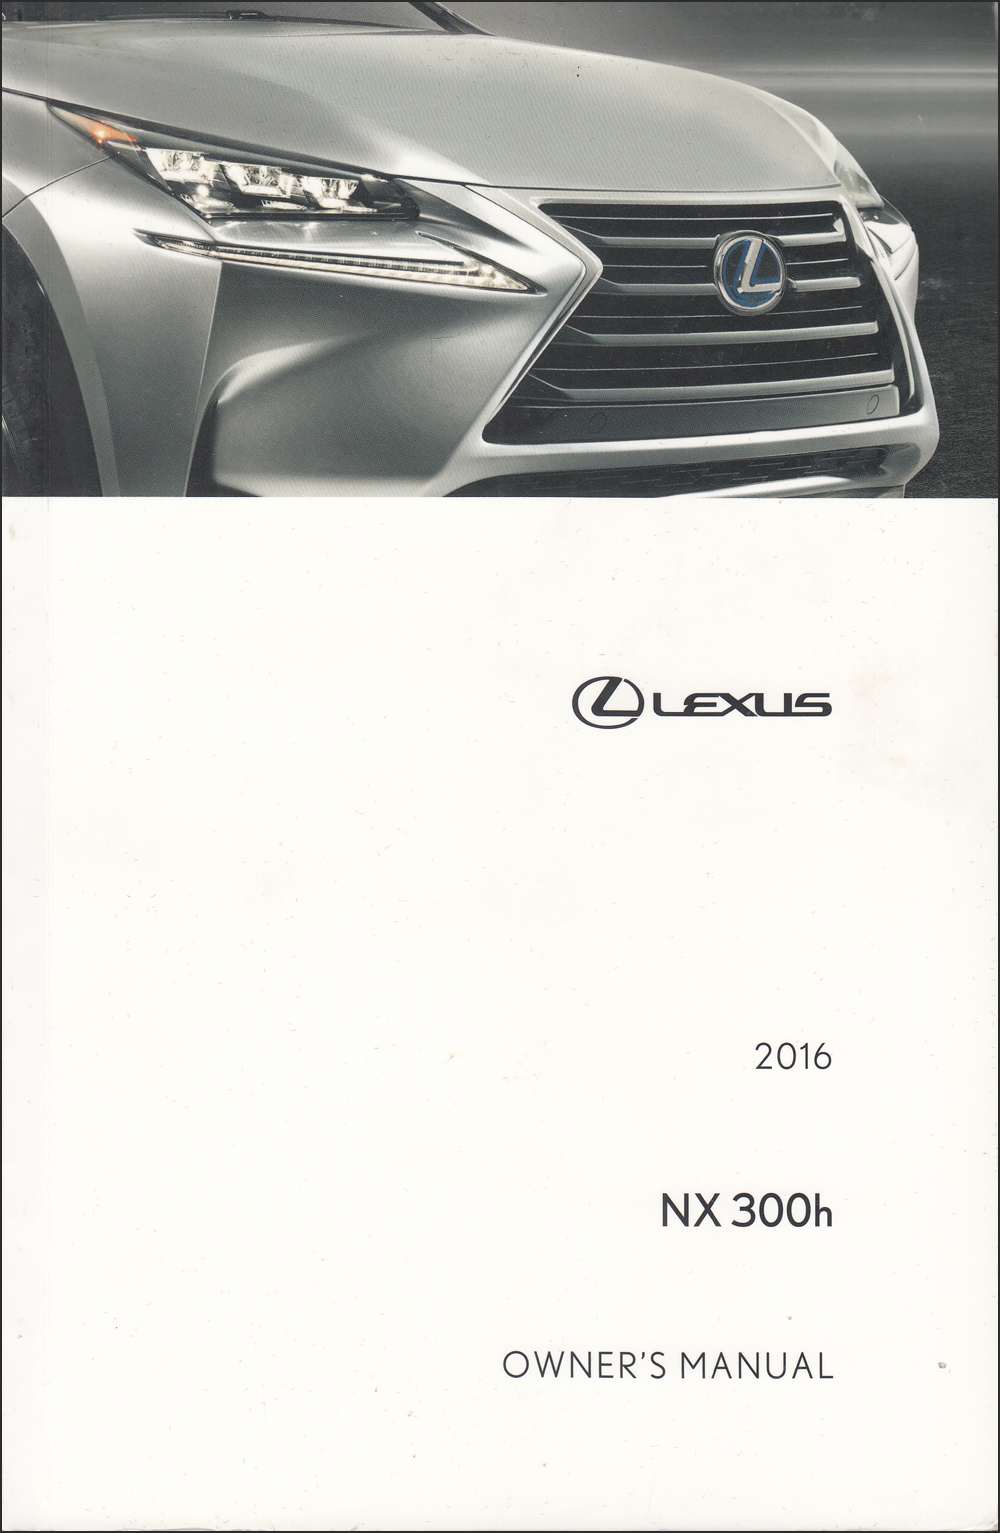 2016 Lexus NX 300h Owner's Manual Original